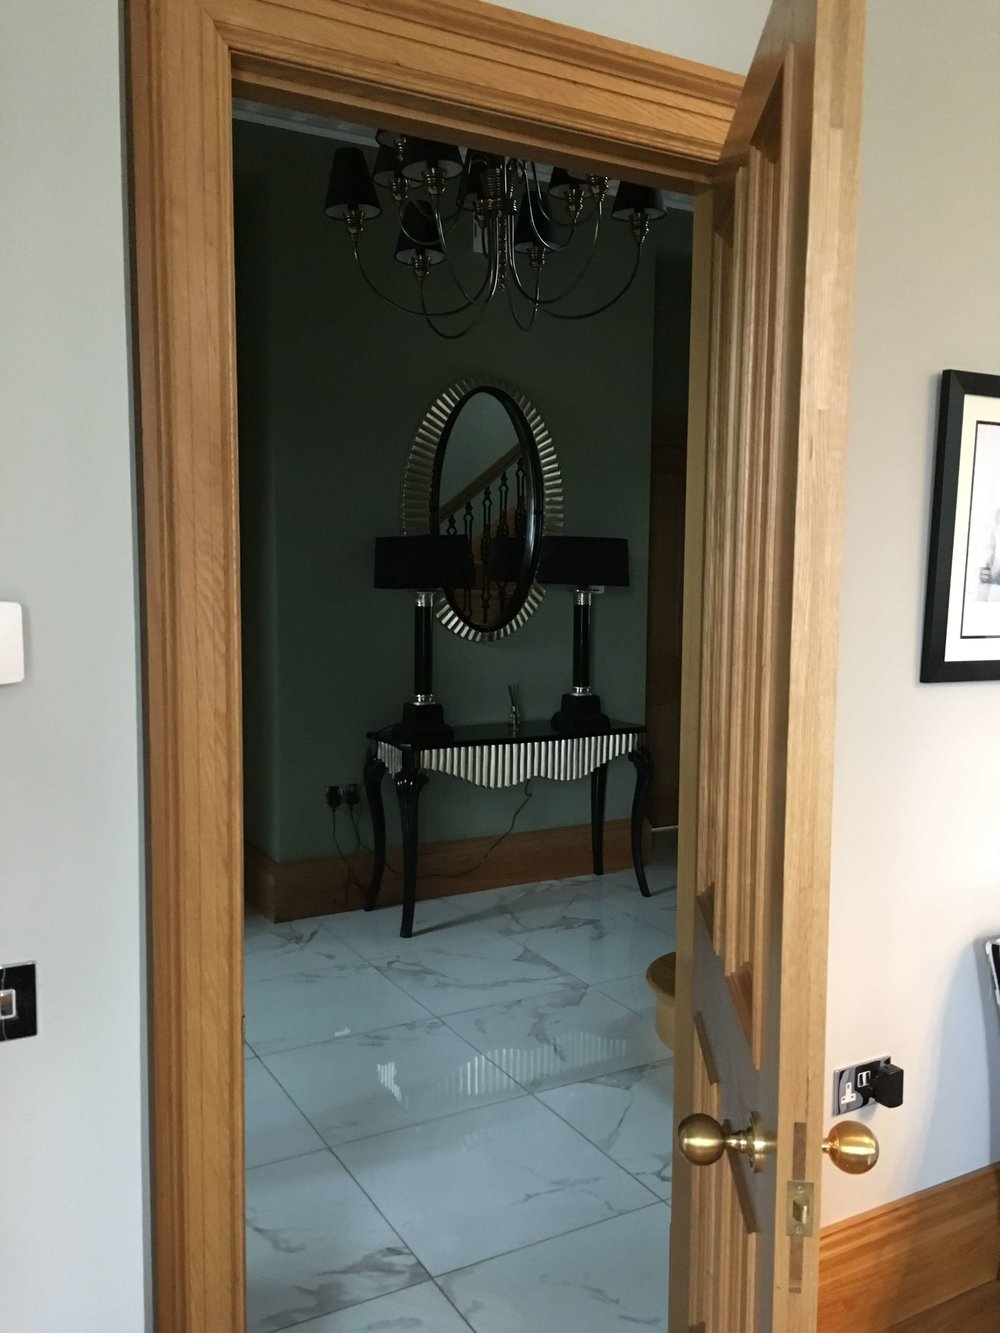 Mirror interior design Aberdeen, Aberdeenshire | Interiors Unlimited